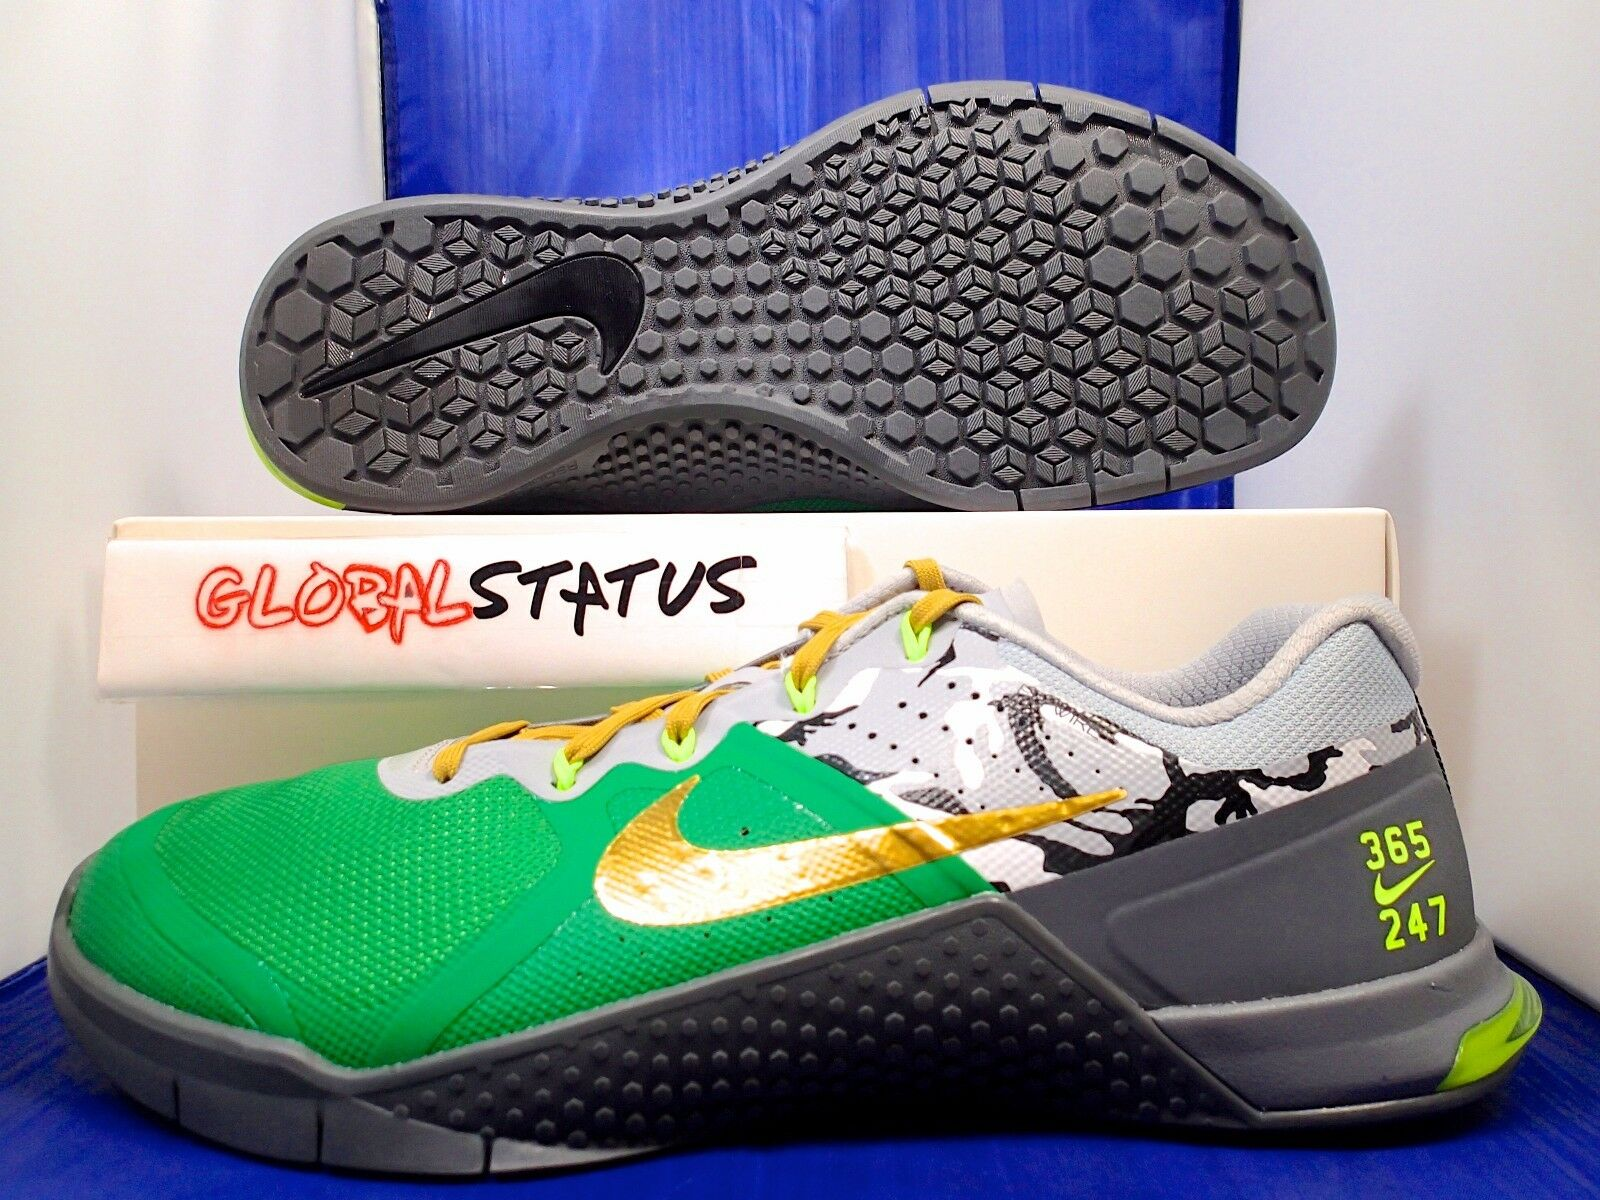 MENS NIKE ID METCON 2 GREEN GREY CAMO PRINTED CROSS FIT SHOES 846027 991 SIZE 11